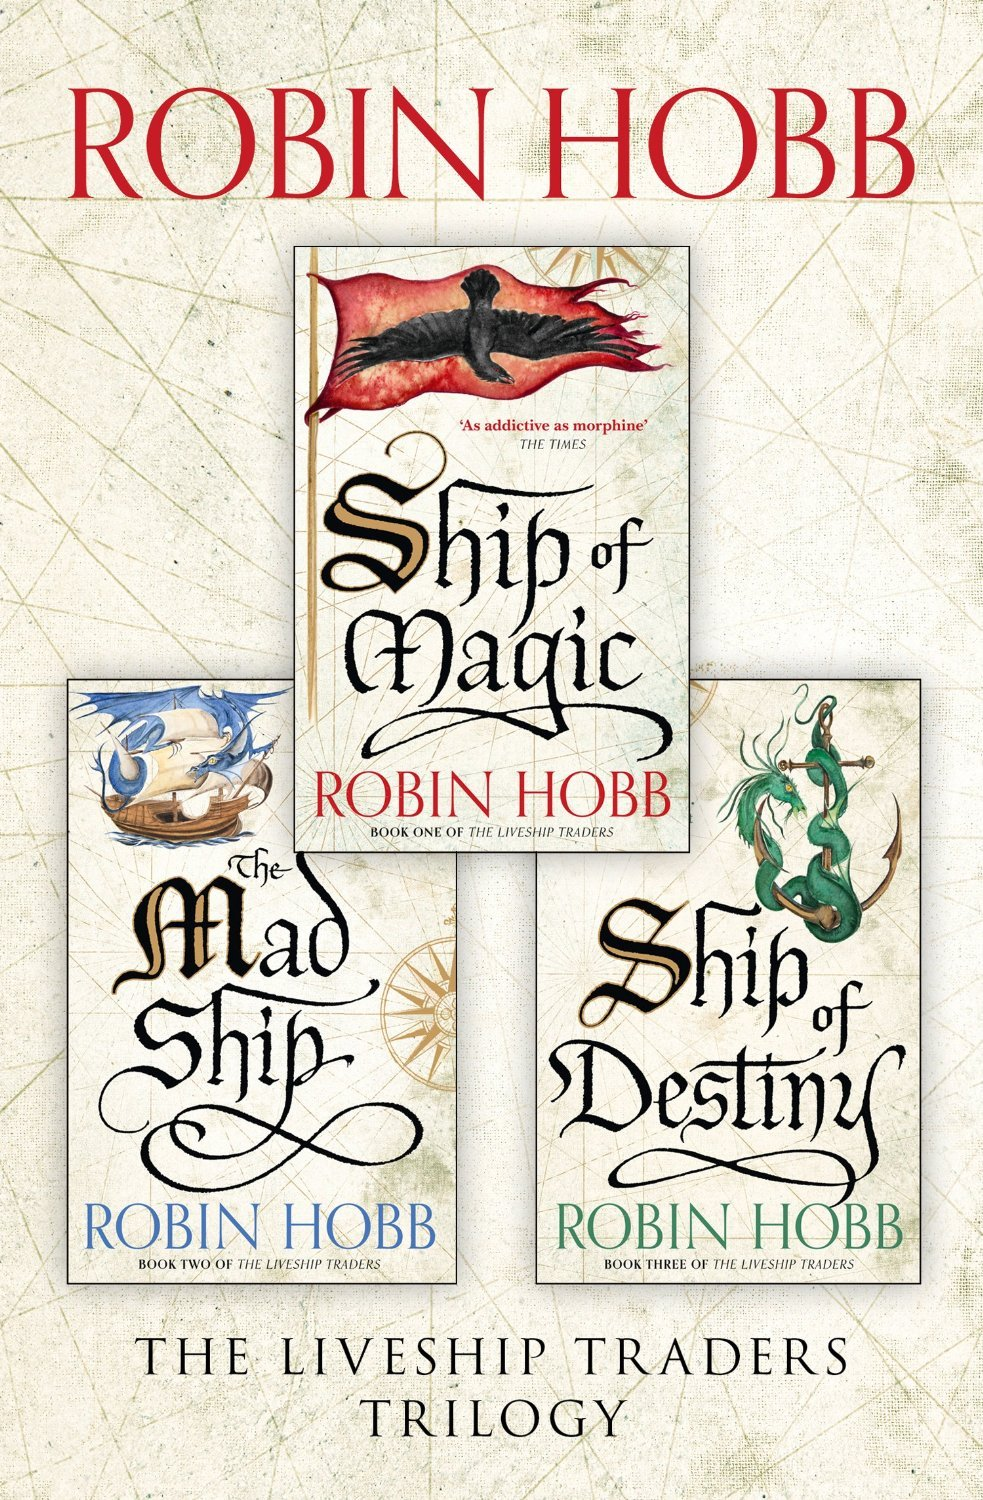 The Complete Liveship Traders Trilogy: Ship of Magic, The Mad Ship, Ship of Destiny Robin Hobb